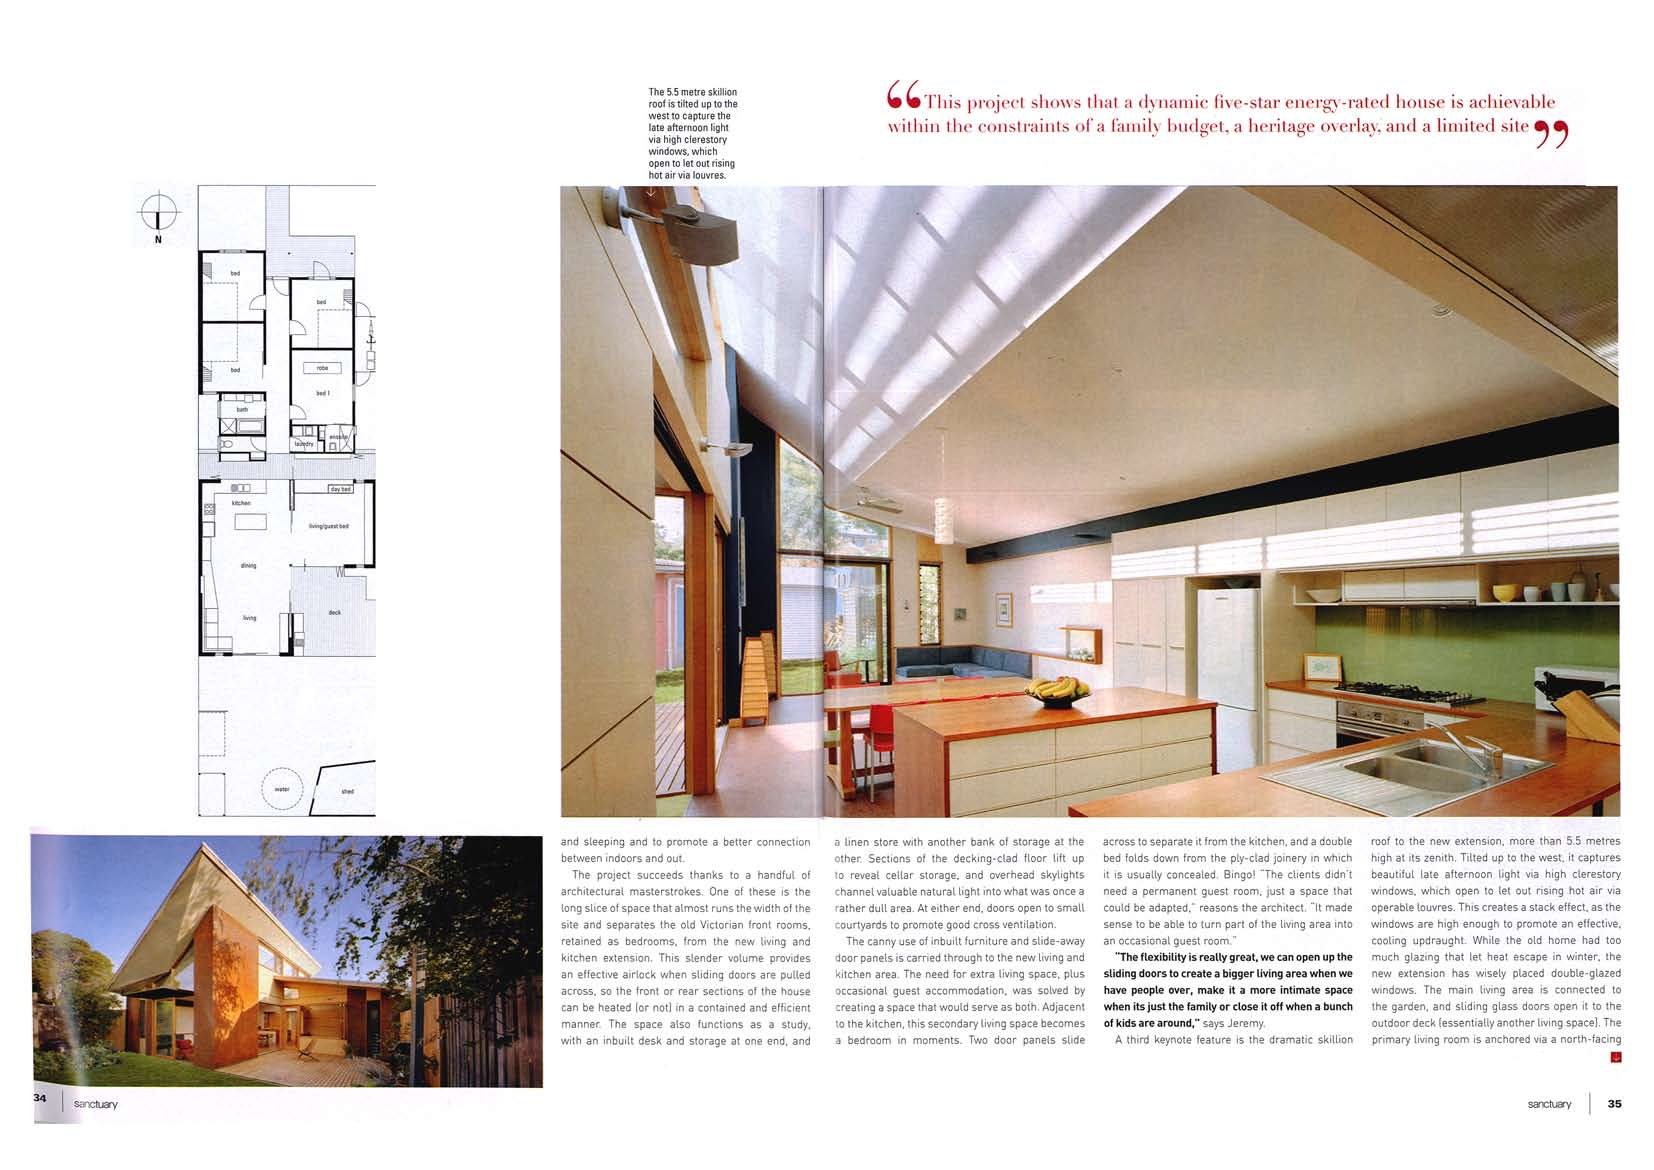 2007_Sanctuary Magazine_The Flexible Home__Page_3.jpg